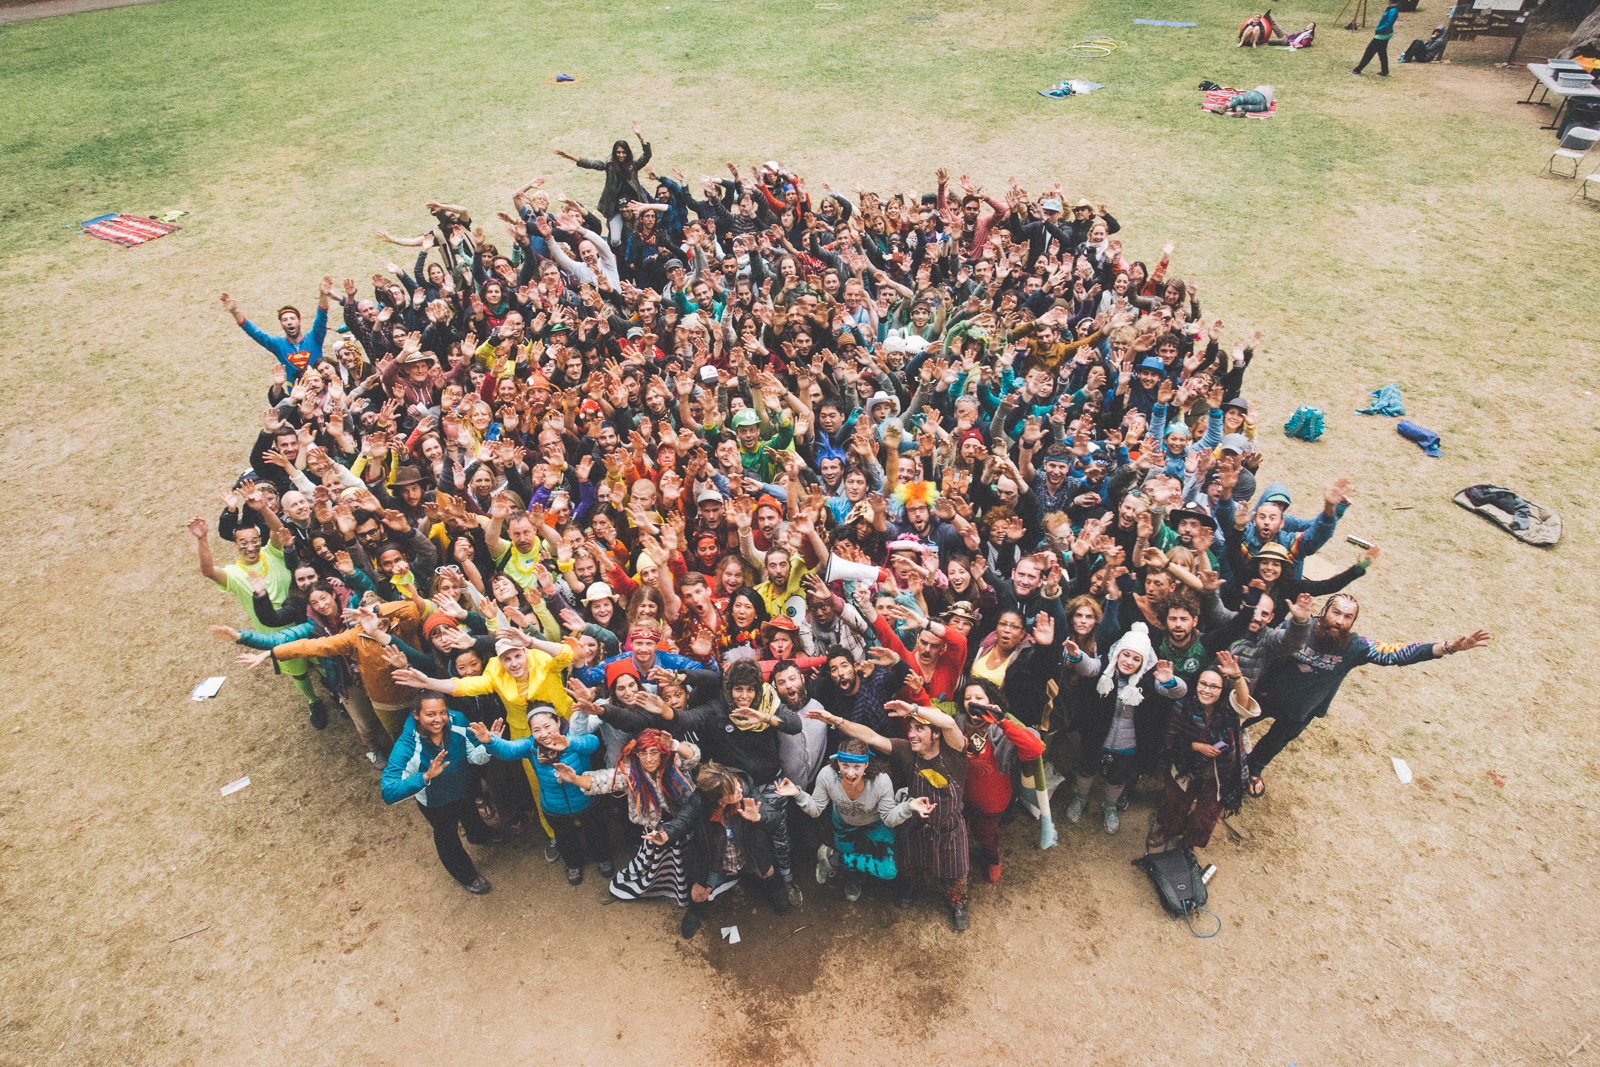 Large group picture of happy campers in a field looking up at the camera